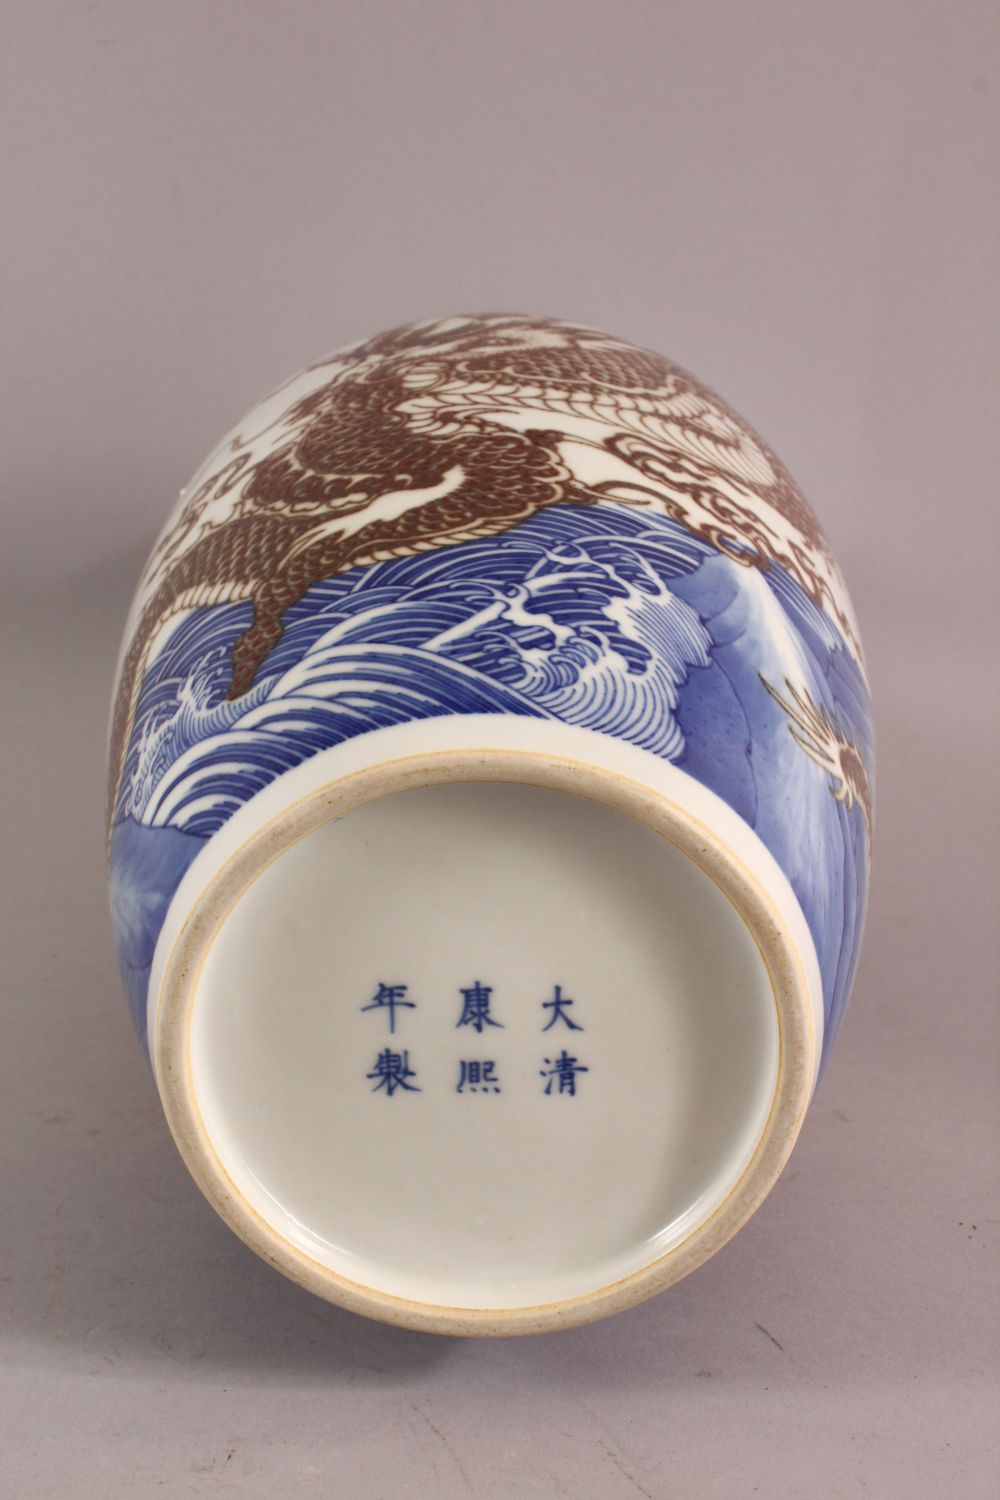 A LARGE CHINESE UNDERGLAZE BLUE & COPPER RED PORCELAIN VASE, decorated with dragons amongst waves, - Image 6 of 7